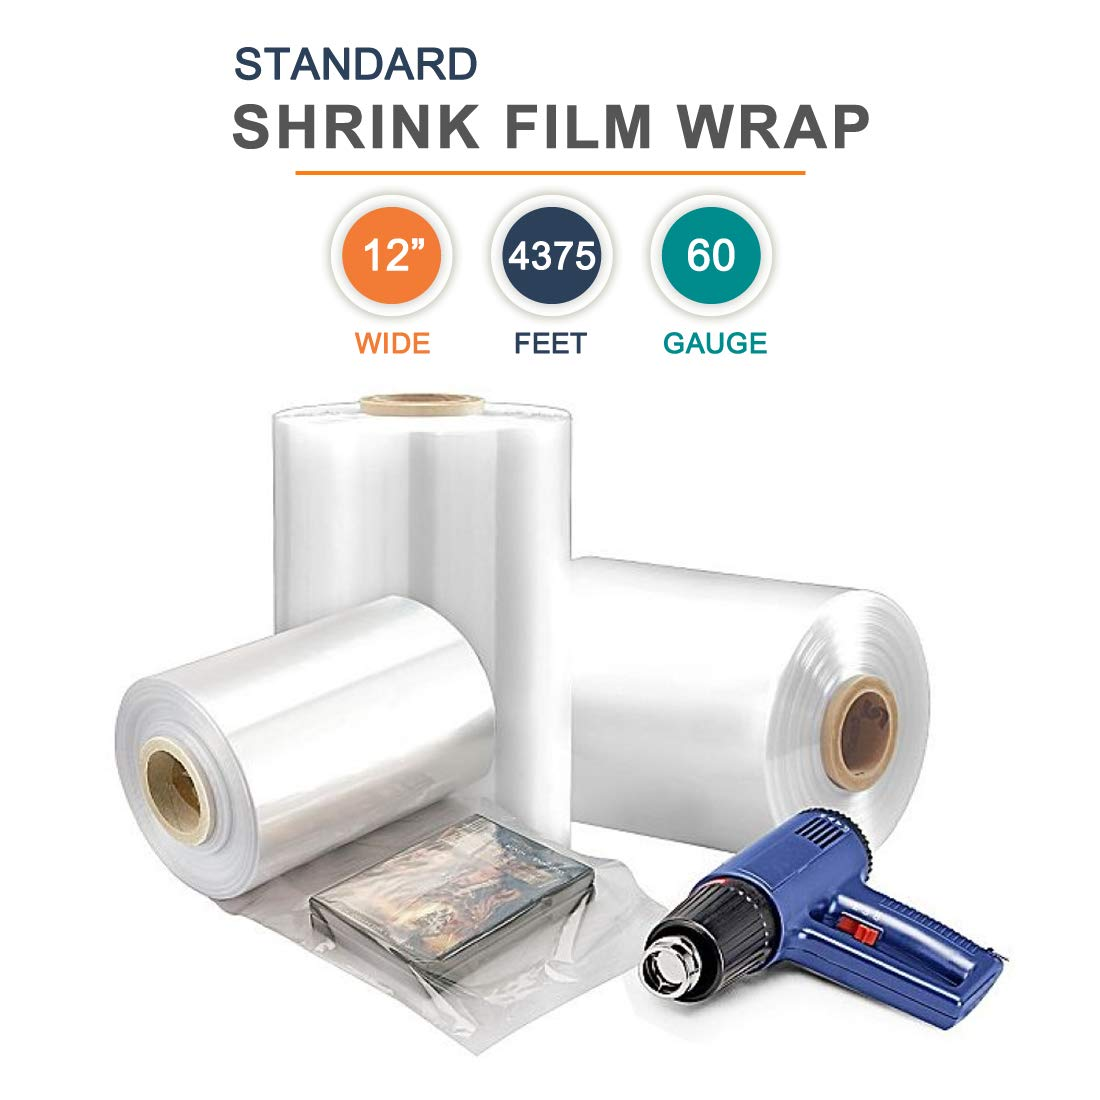 1 Roll Excellent Clarity High Gloss 18 Polyolefin Centerfold Shrink Film CrossLinked 4375 ft x 60 Gauge Thick